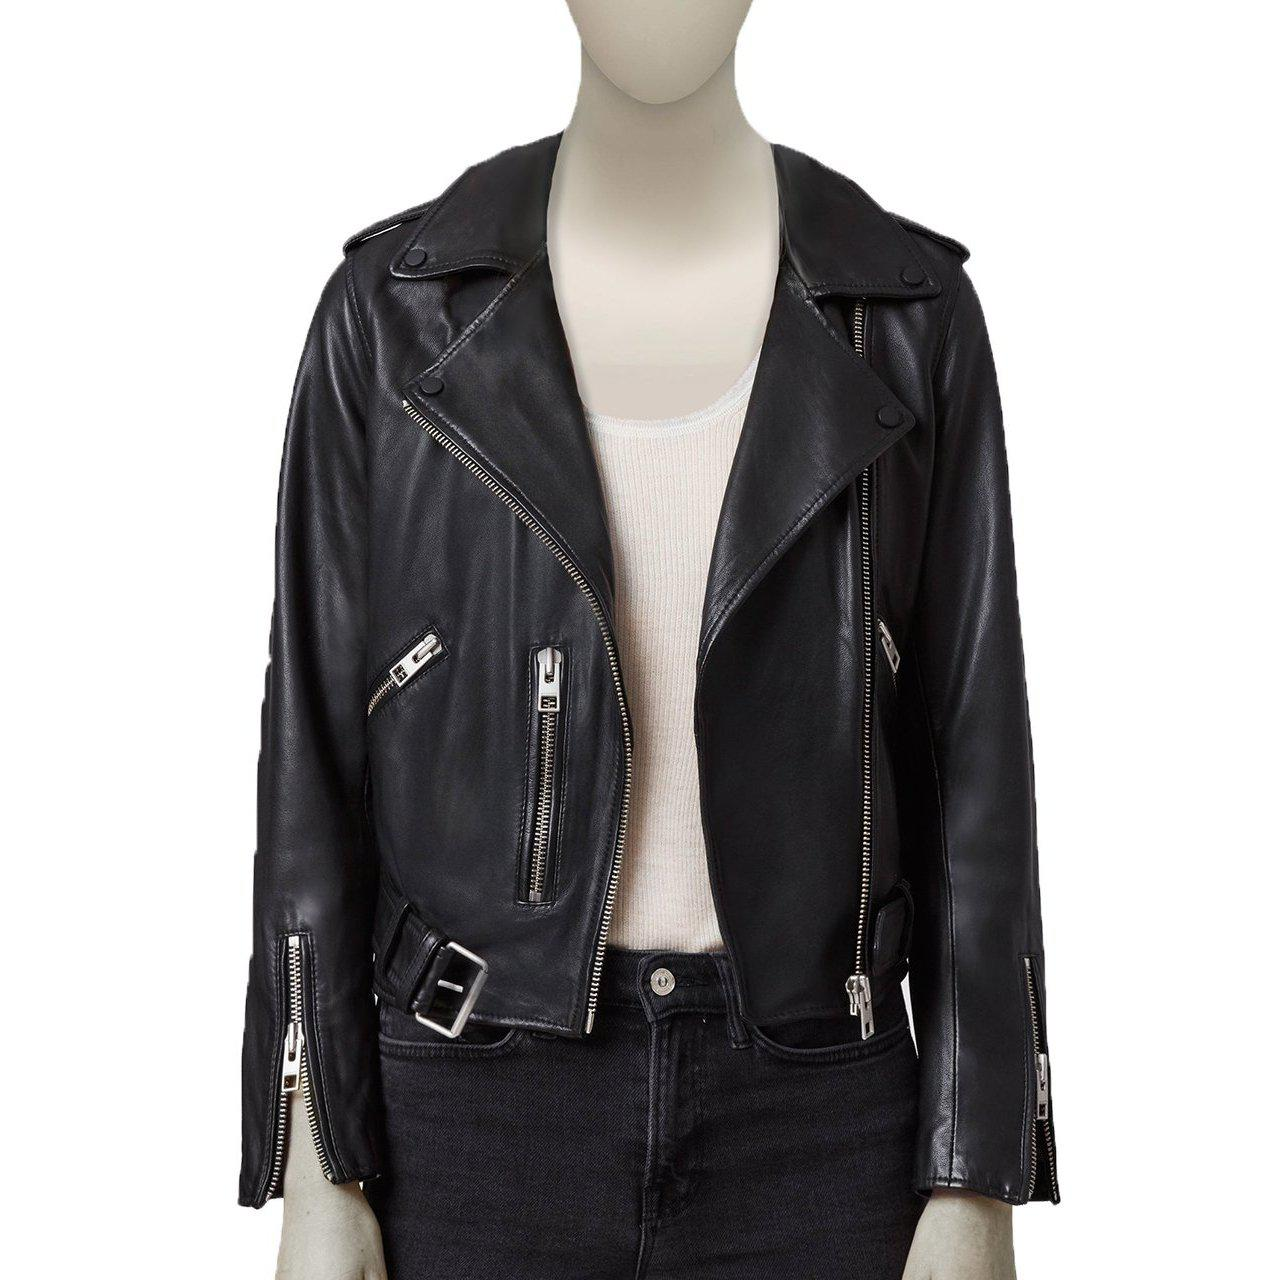 Biker Women Leather Jacket with 3 Front Pockets - Leather Jacket